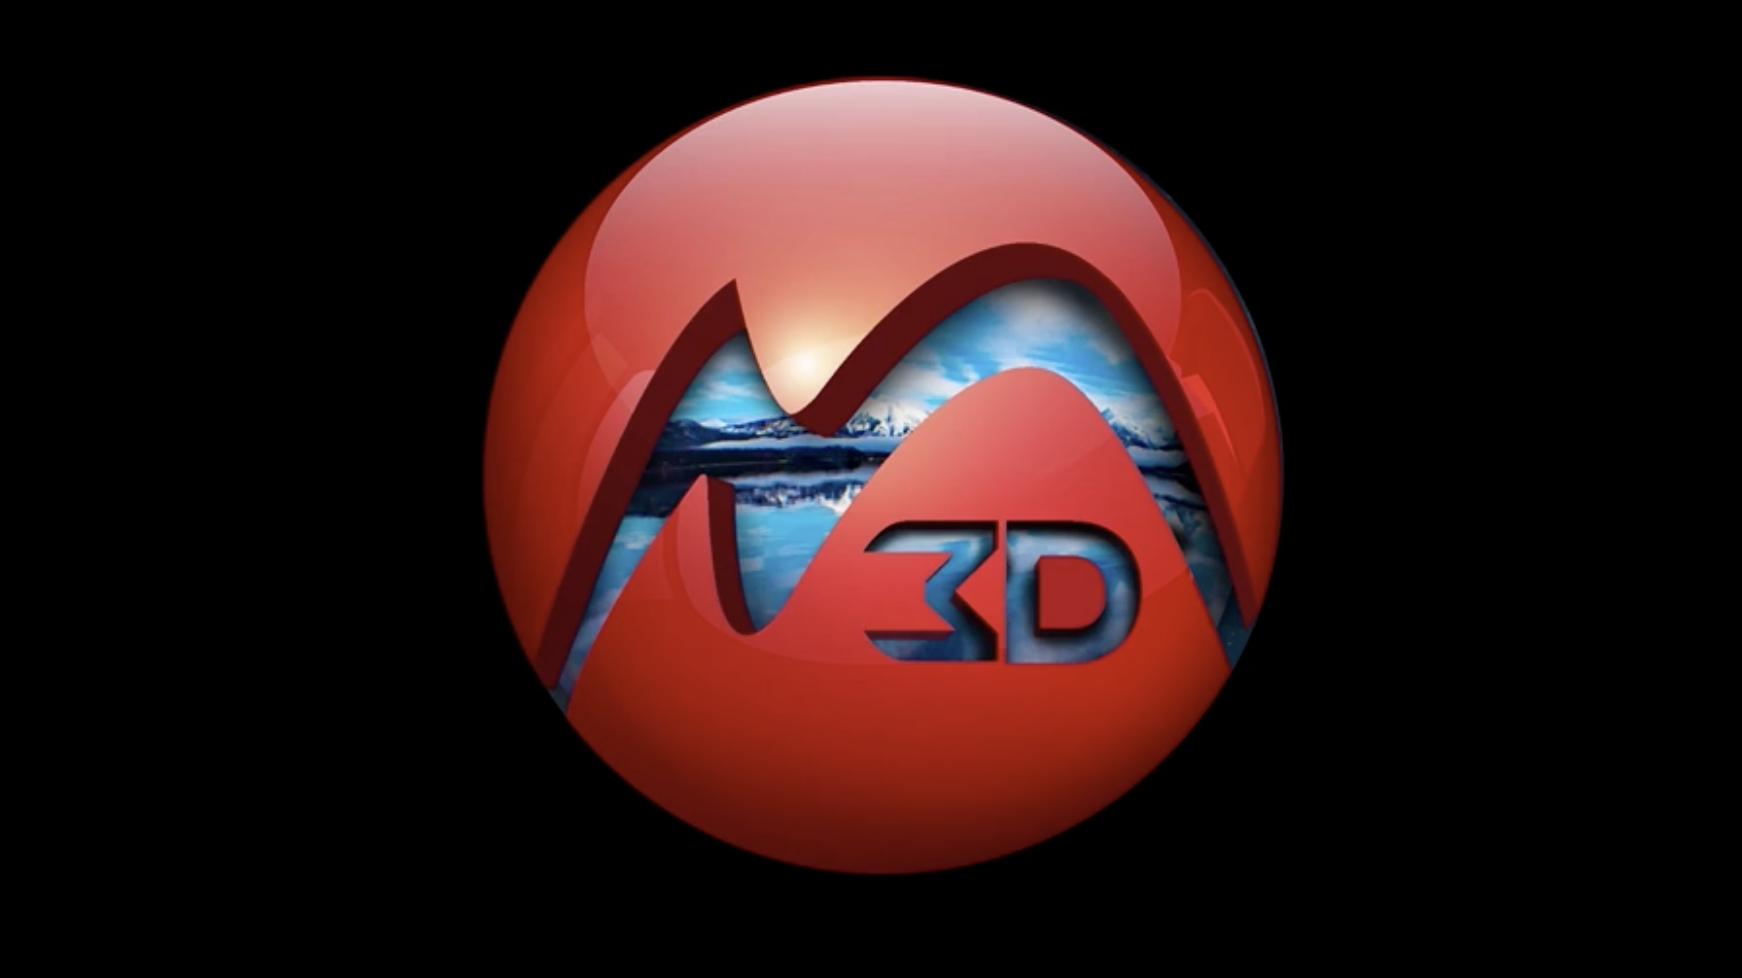 Infinadeck and M3D Announce Channel Partnership